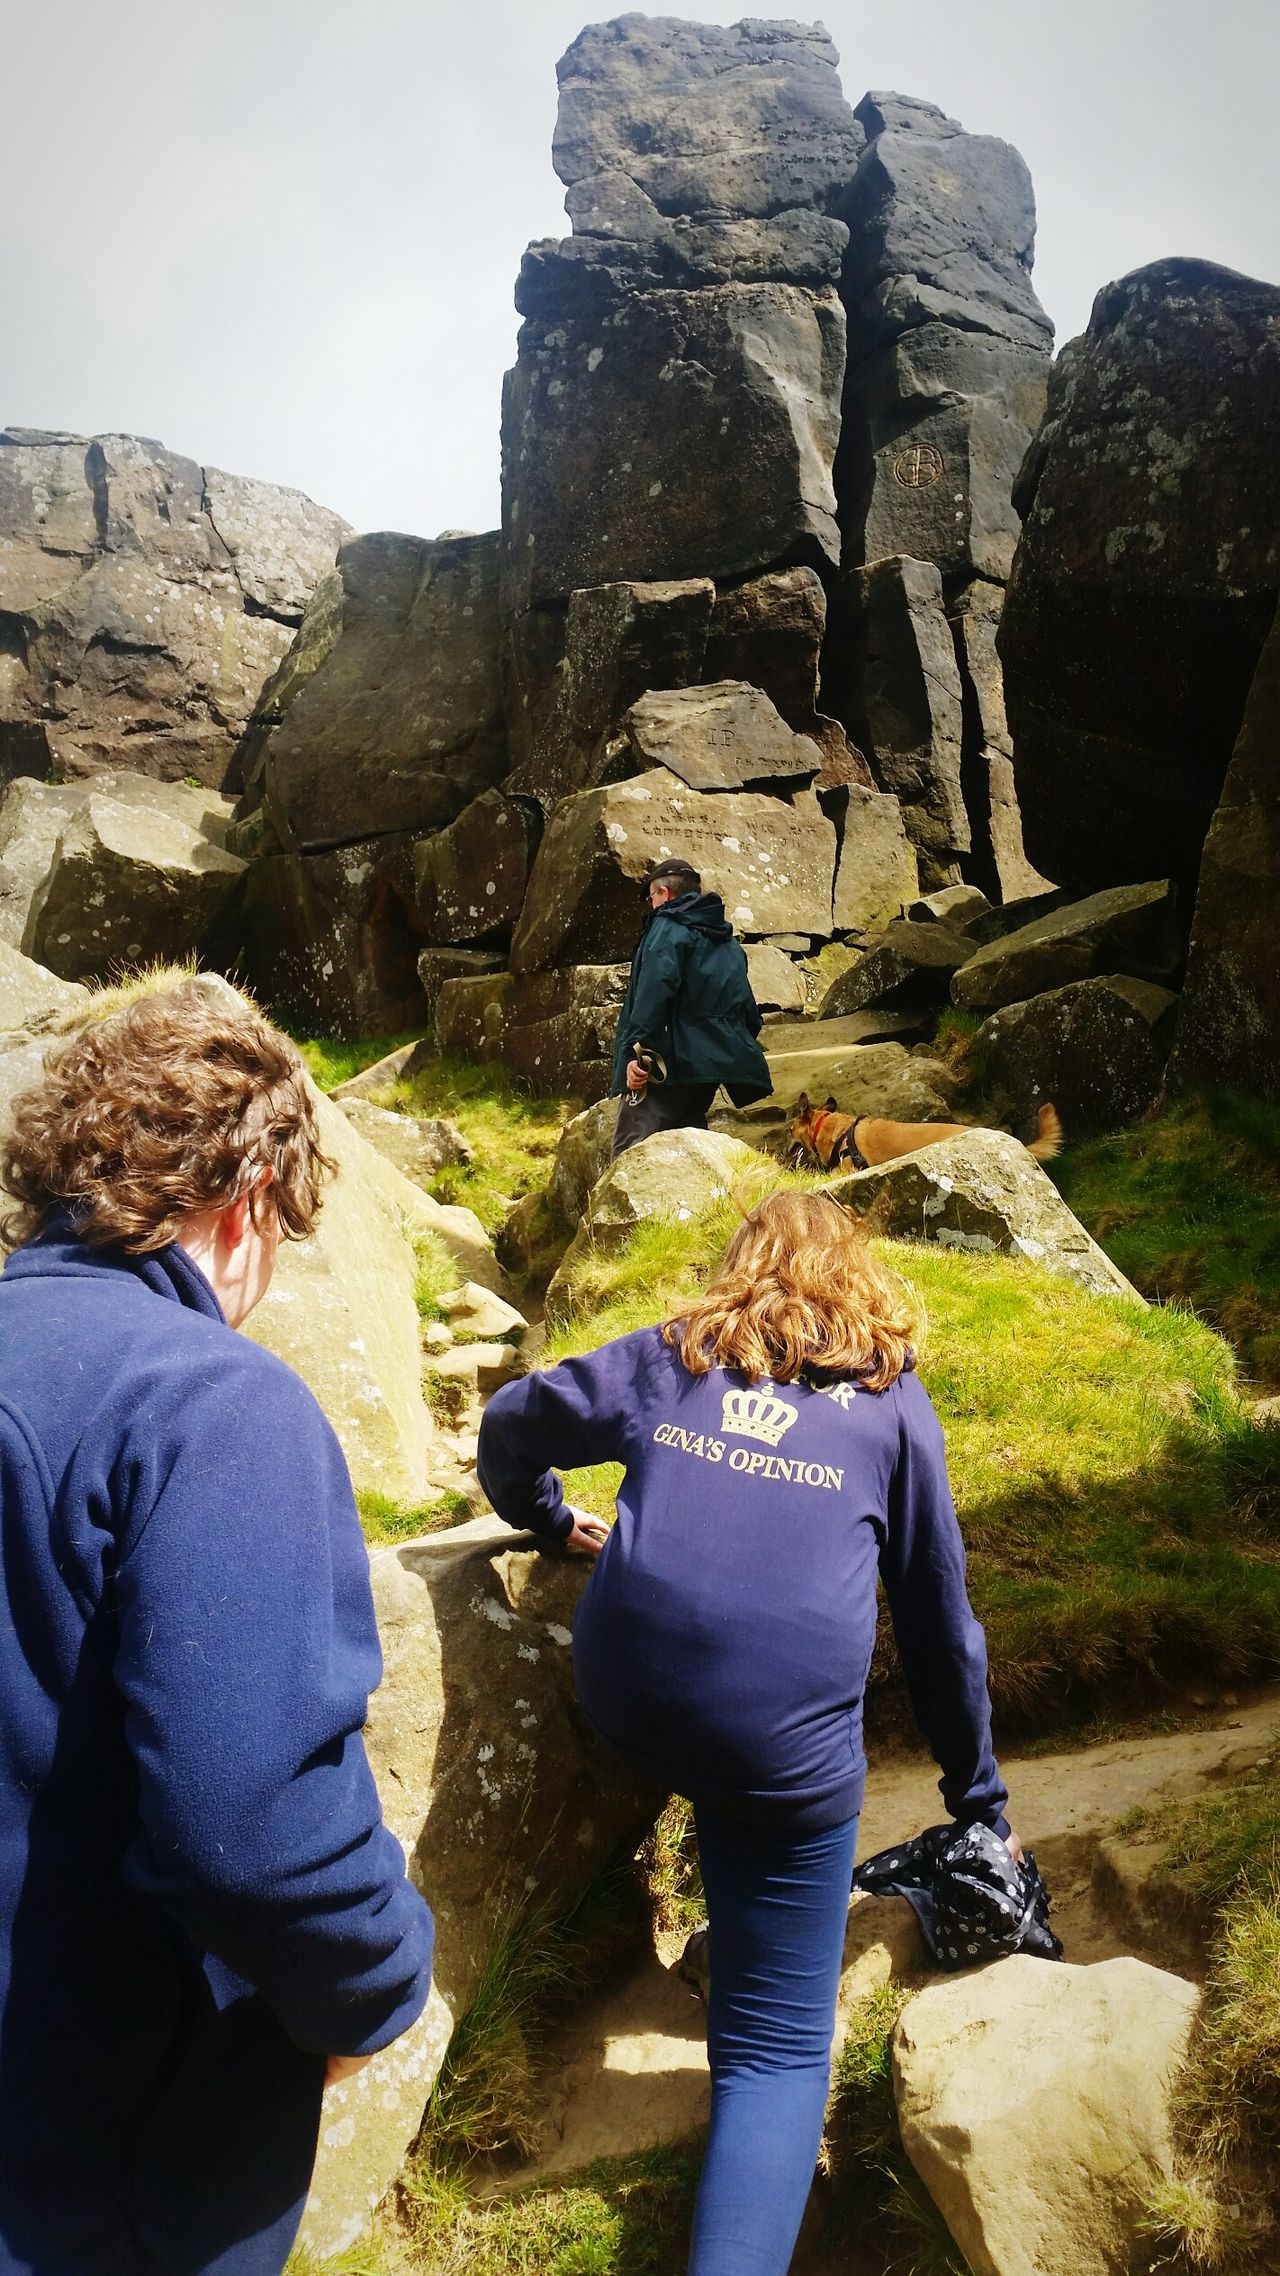 Family day out Adventure Buddies Scrambling Family Walks Walks Adventure North Yorkshire Moors Wainstones Nature Dog Walking